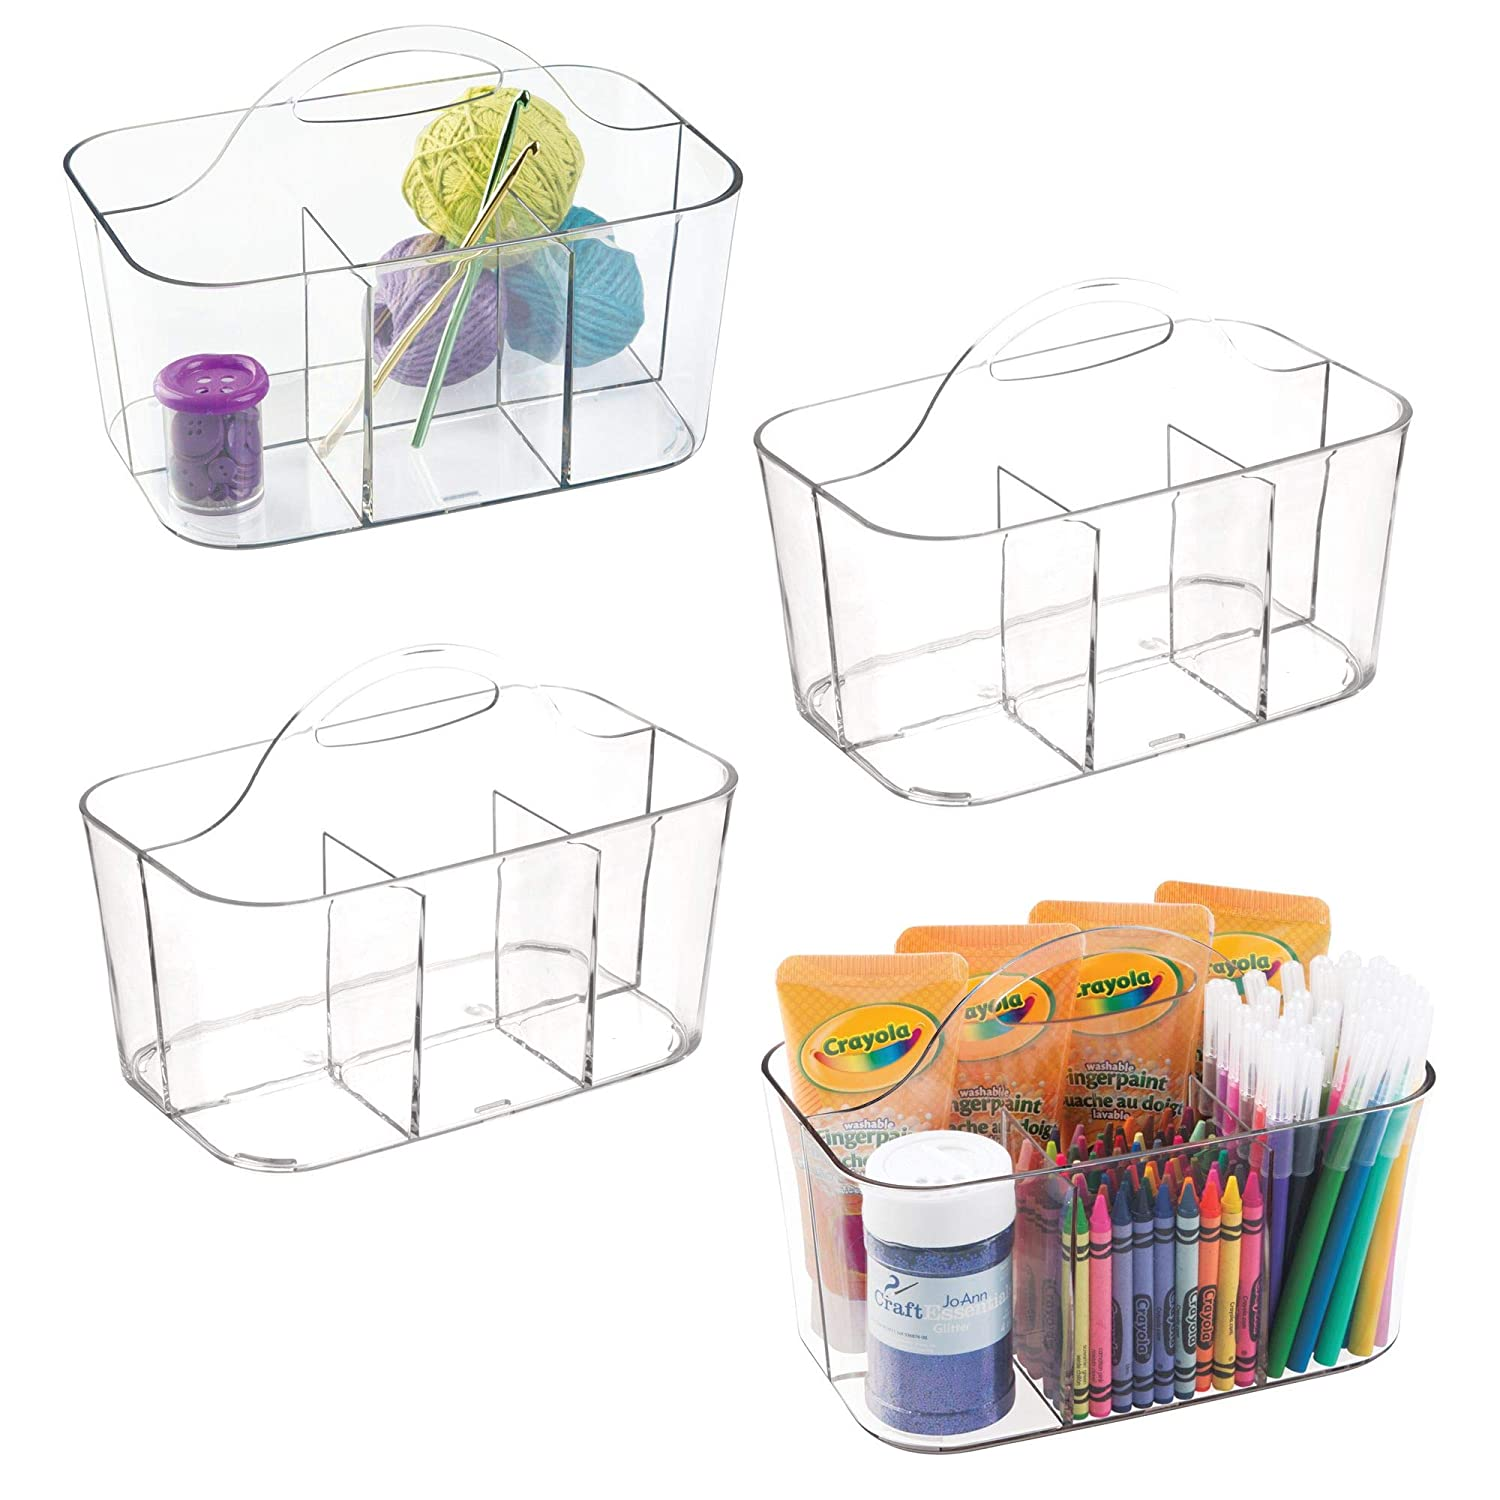 mDesign Art Supplies, Crafts, Crayons and Sewing Organizer Tote - Clear MetroDecor 0116MDCS